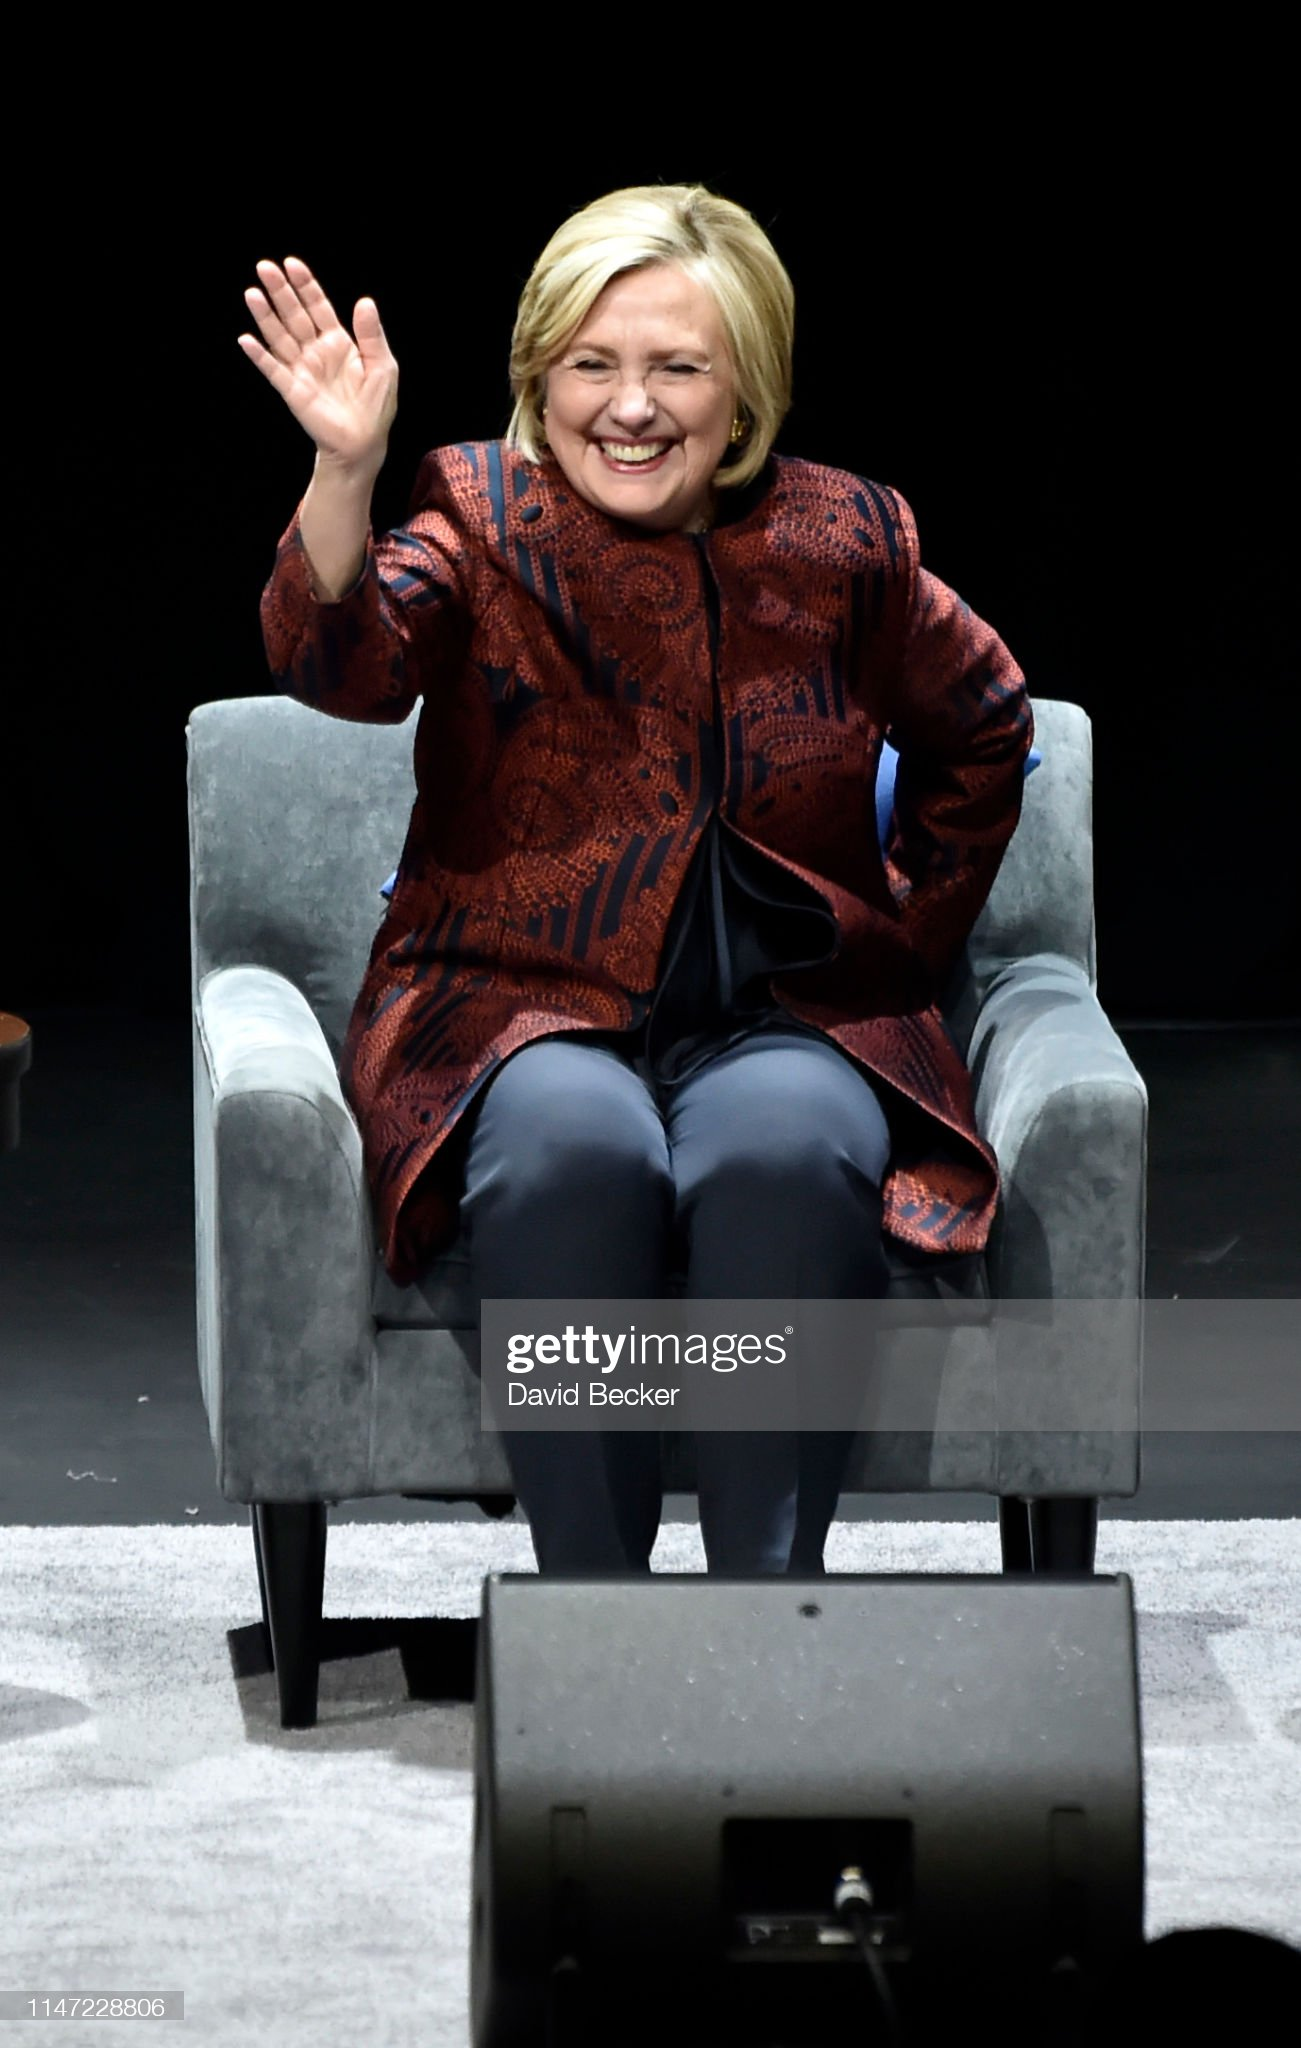 Bill And Hillary Clinton Hold Discussion Series Event In Las Vegas : News Photo